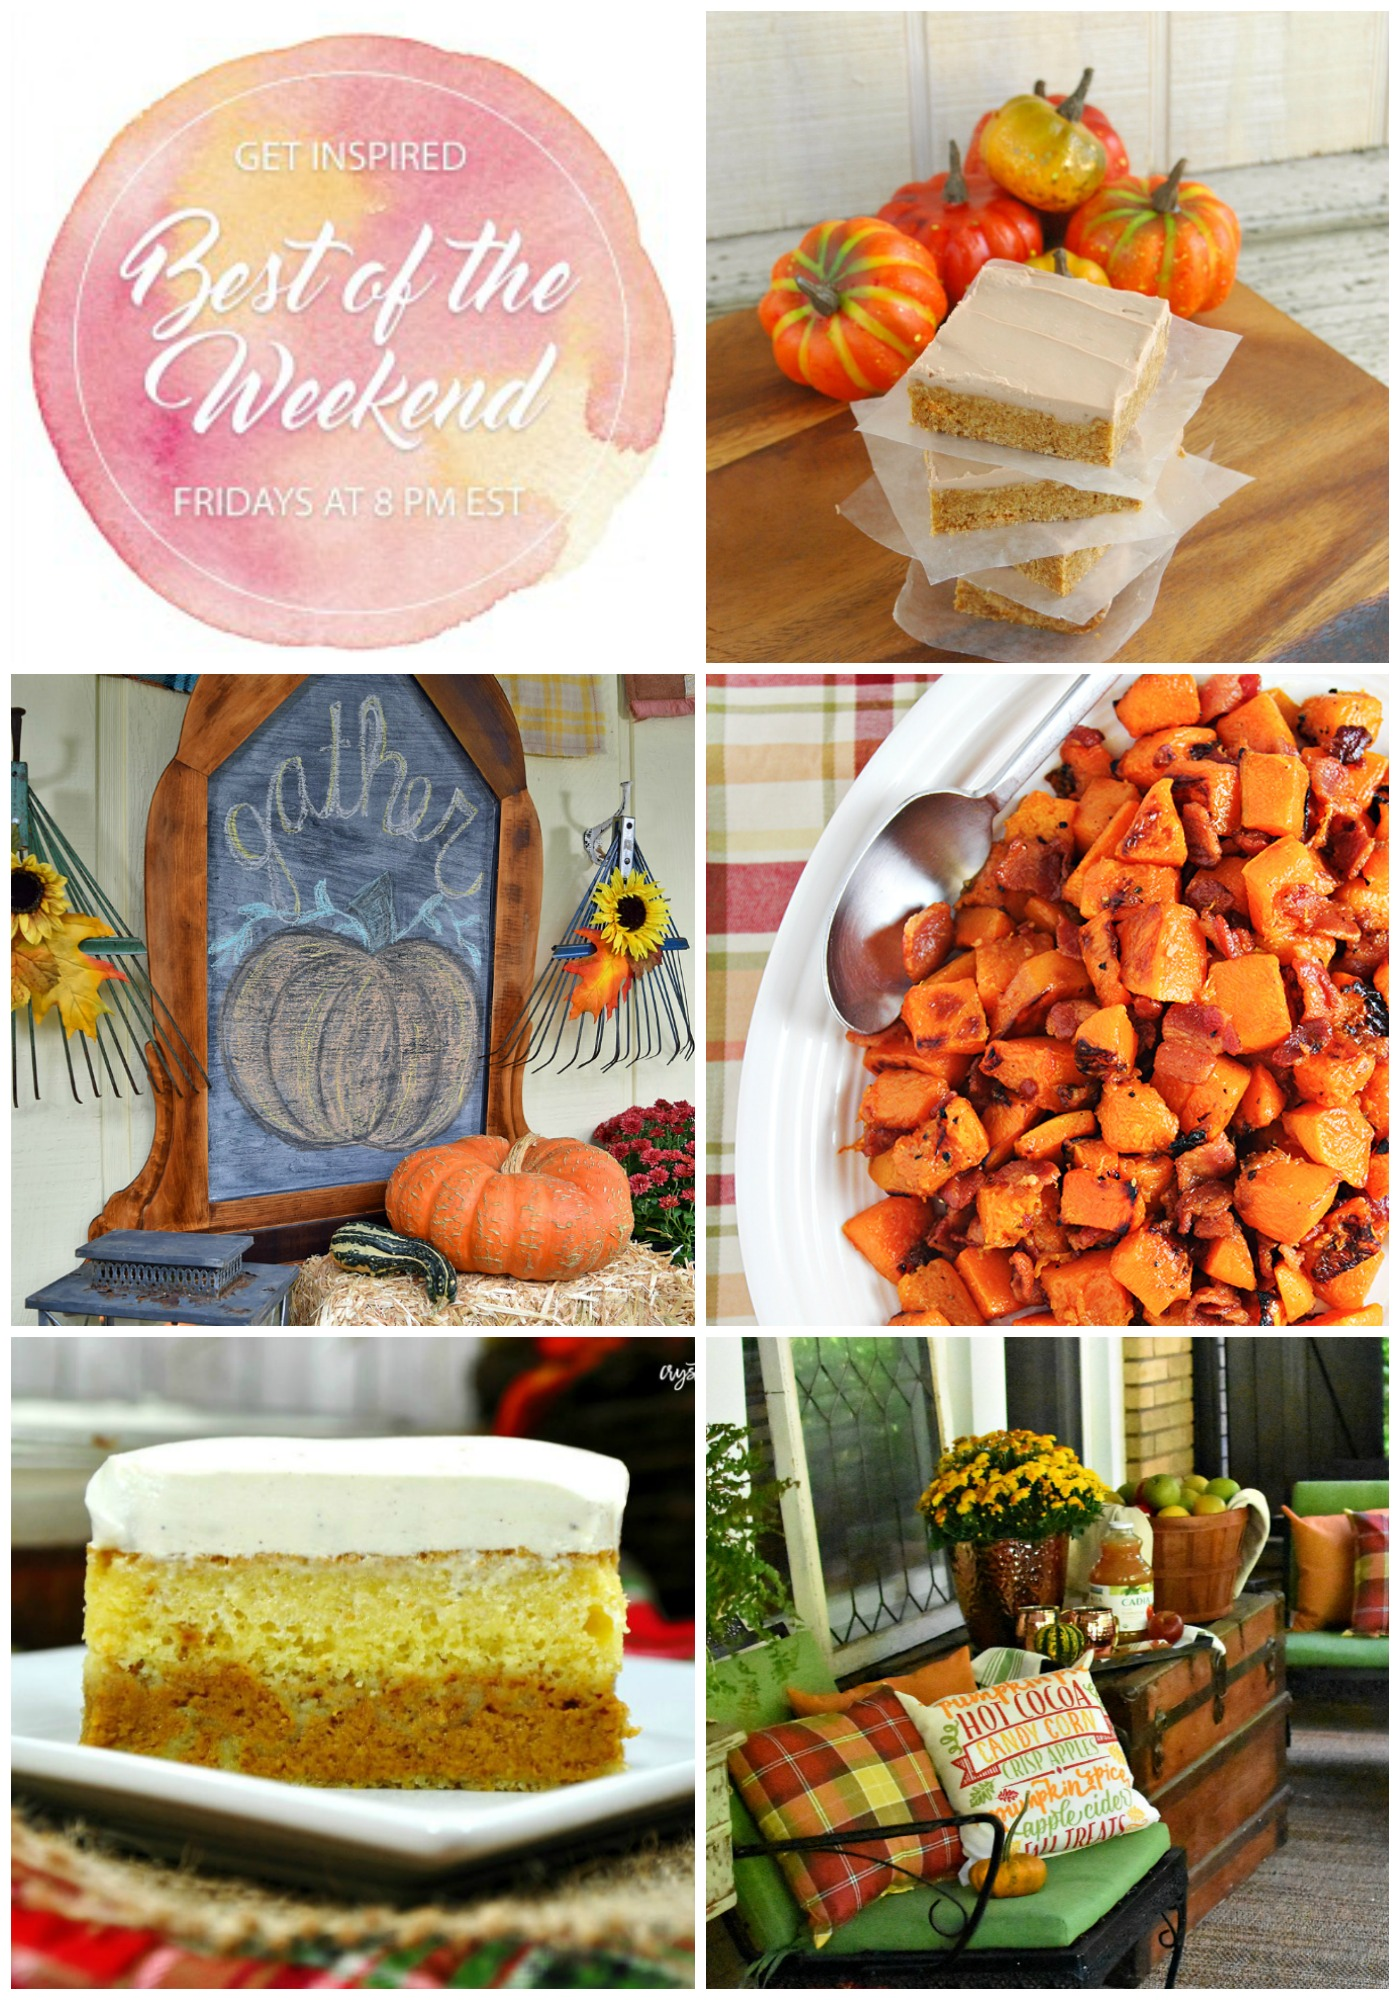 Best of the Weekend Features for October 19, 2018 - Pumpkin Spice Bars with Maple Bourbon Frosting I Fall Decorated Porch and Patio I Maple Glazed Roasted Butternut Squash with Bacon I Magical Layered Pumpkin Cake I Fall Decorated Porch